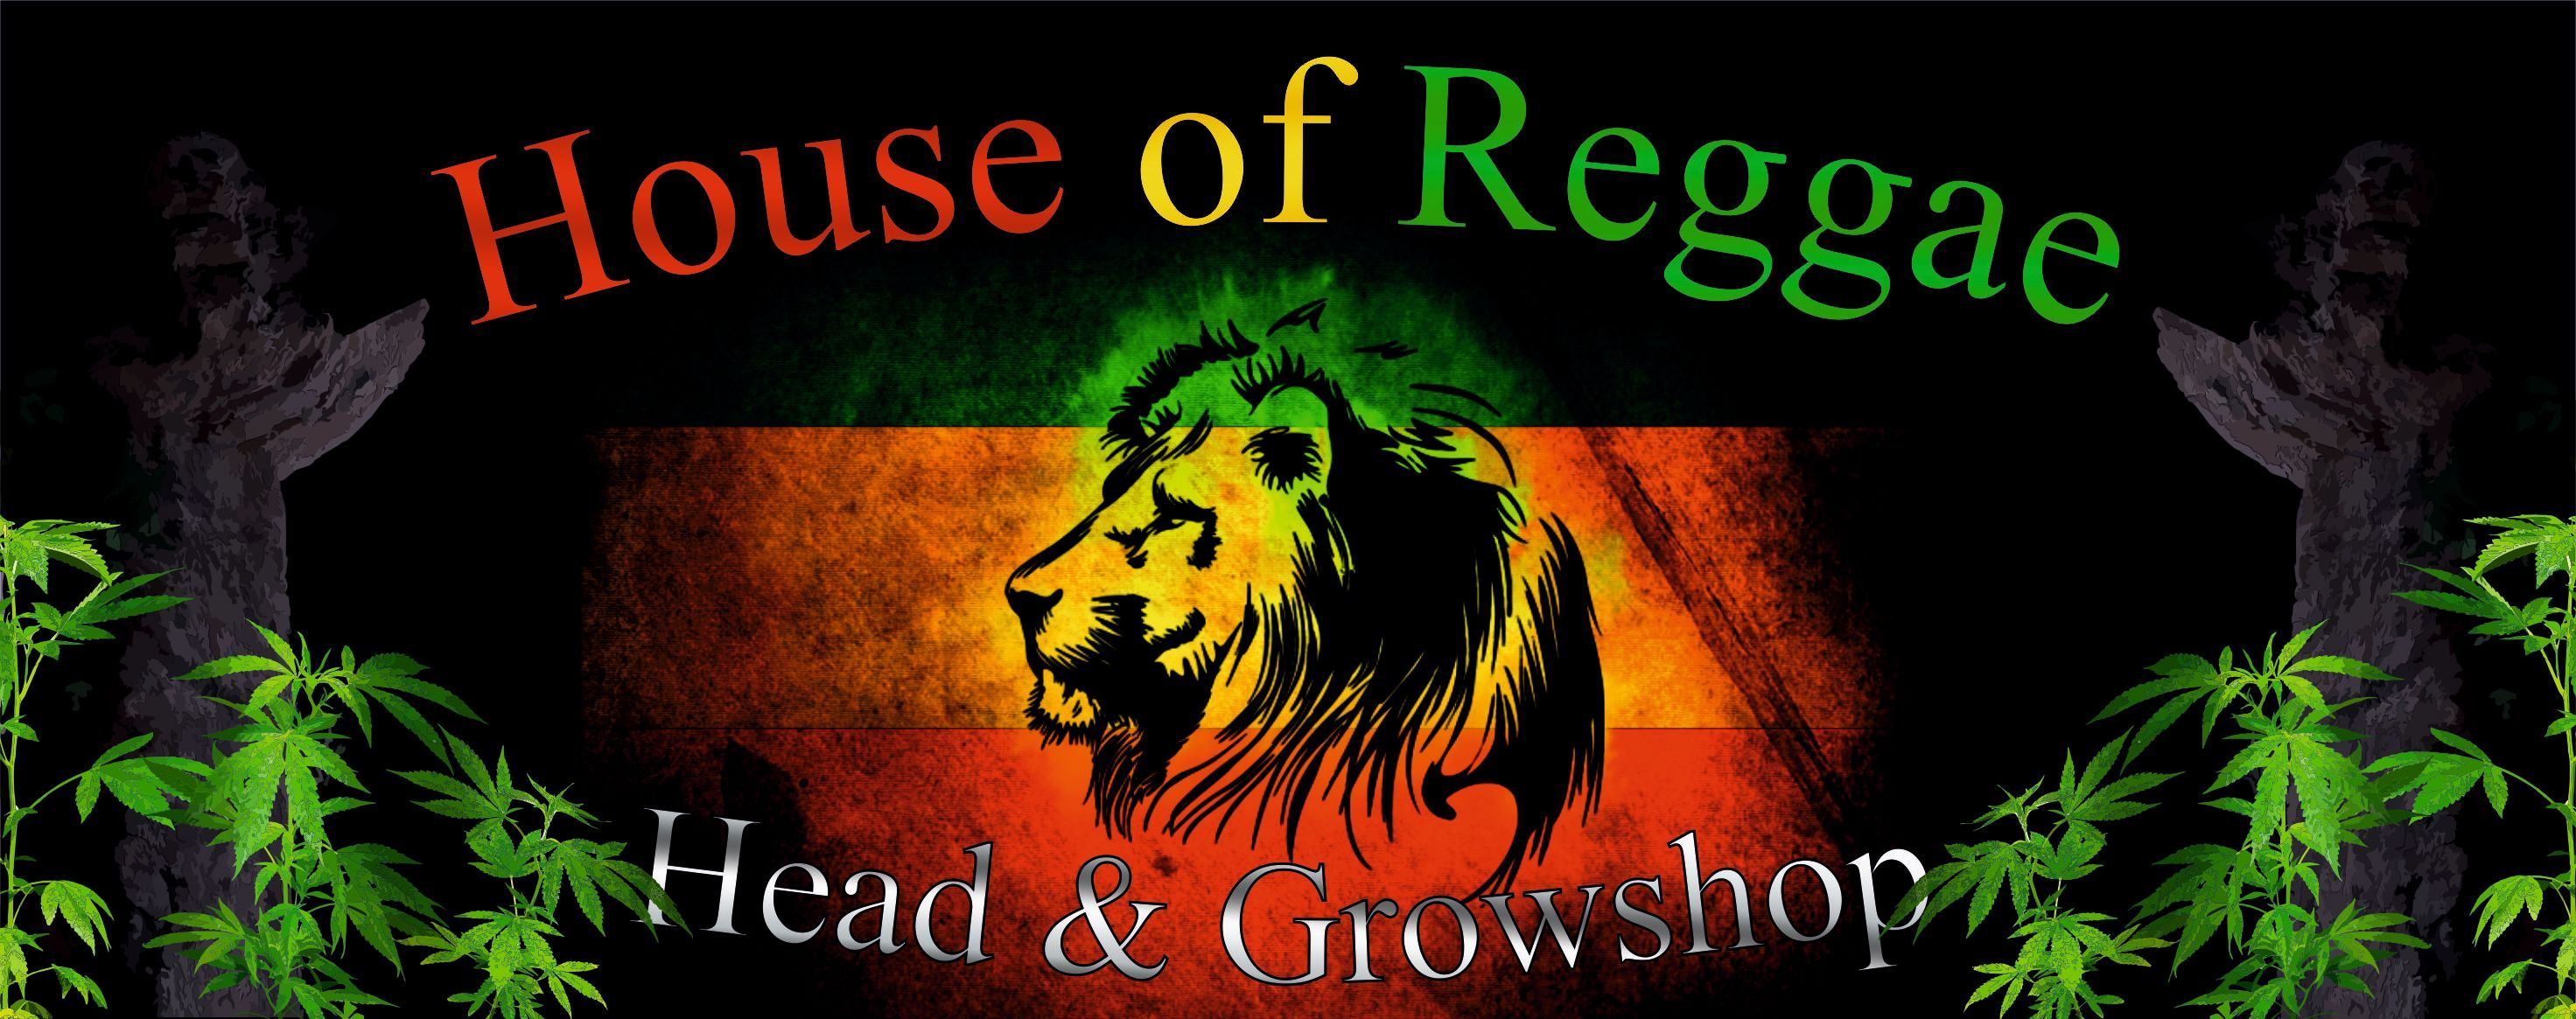 house-of-reggae.jpg